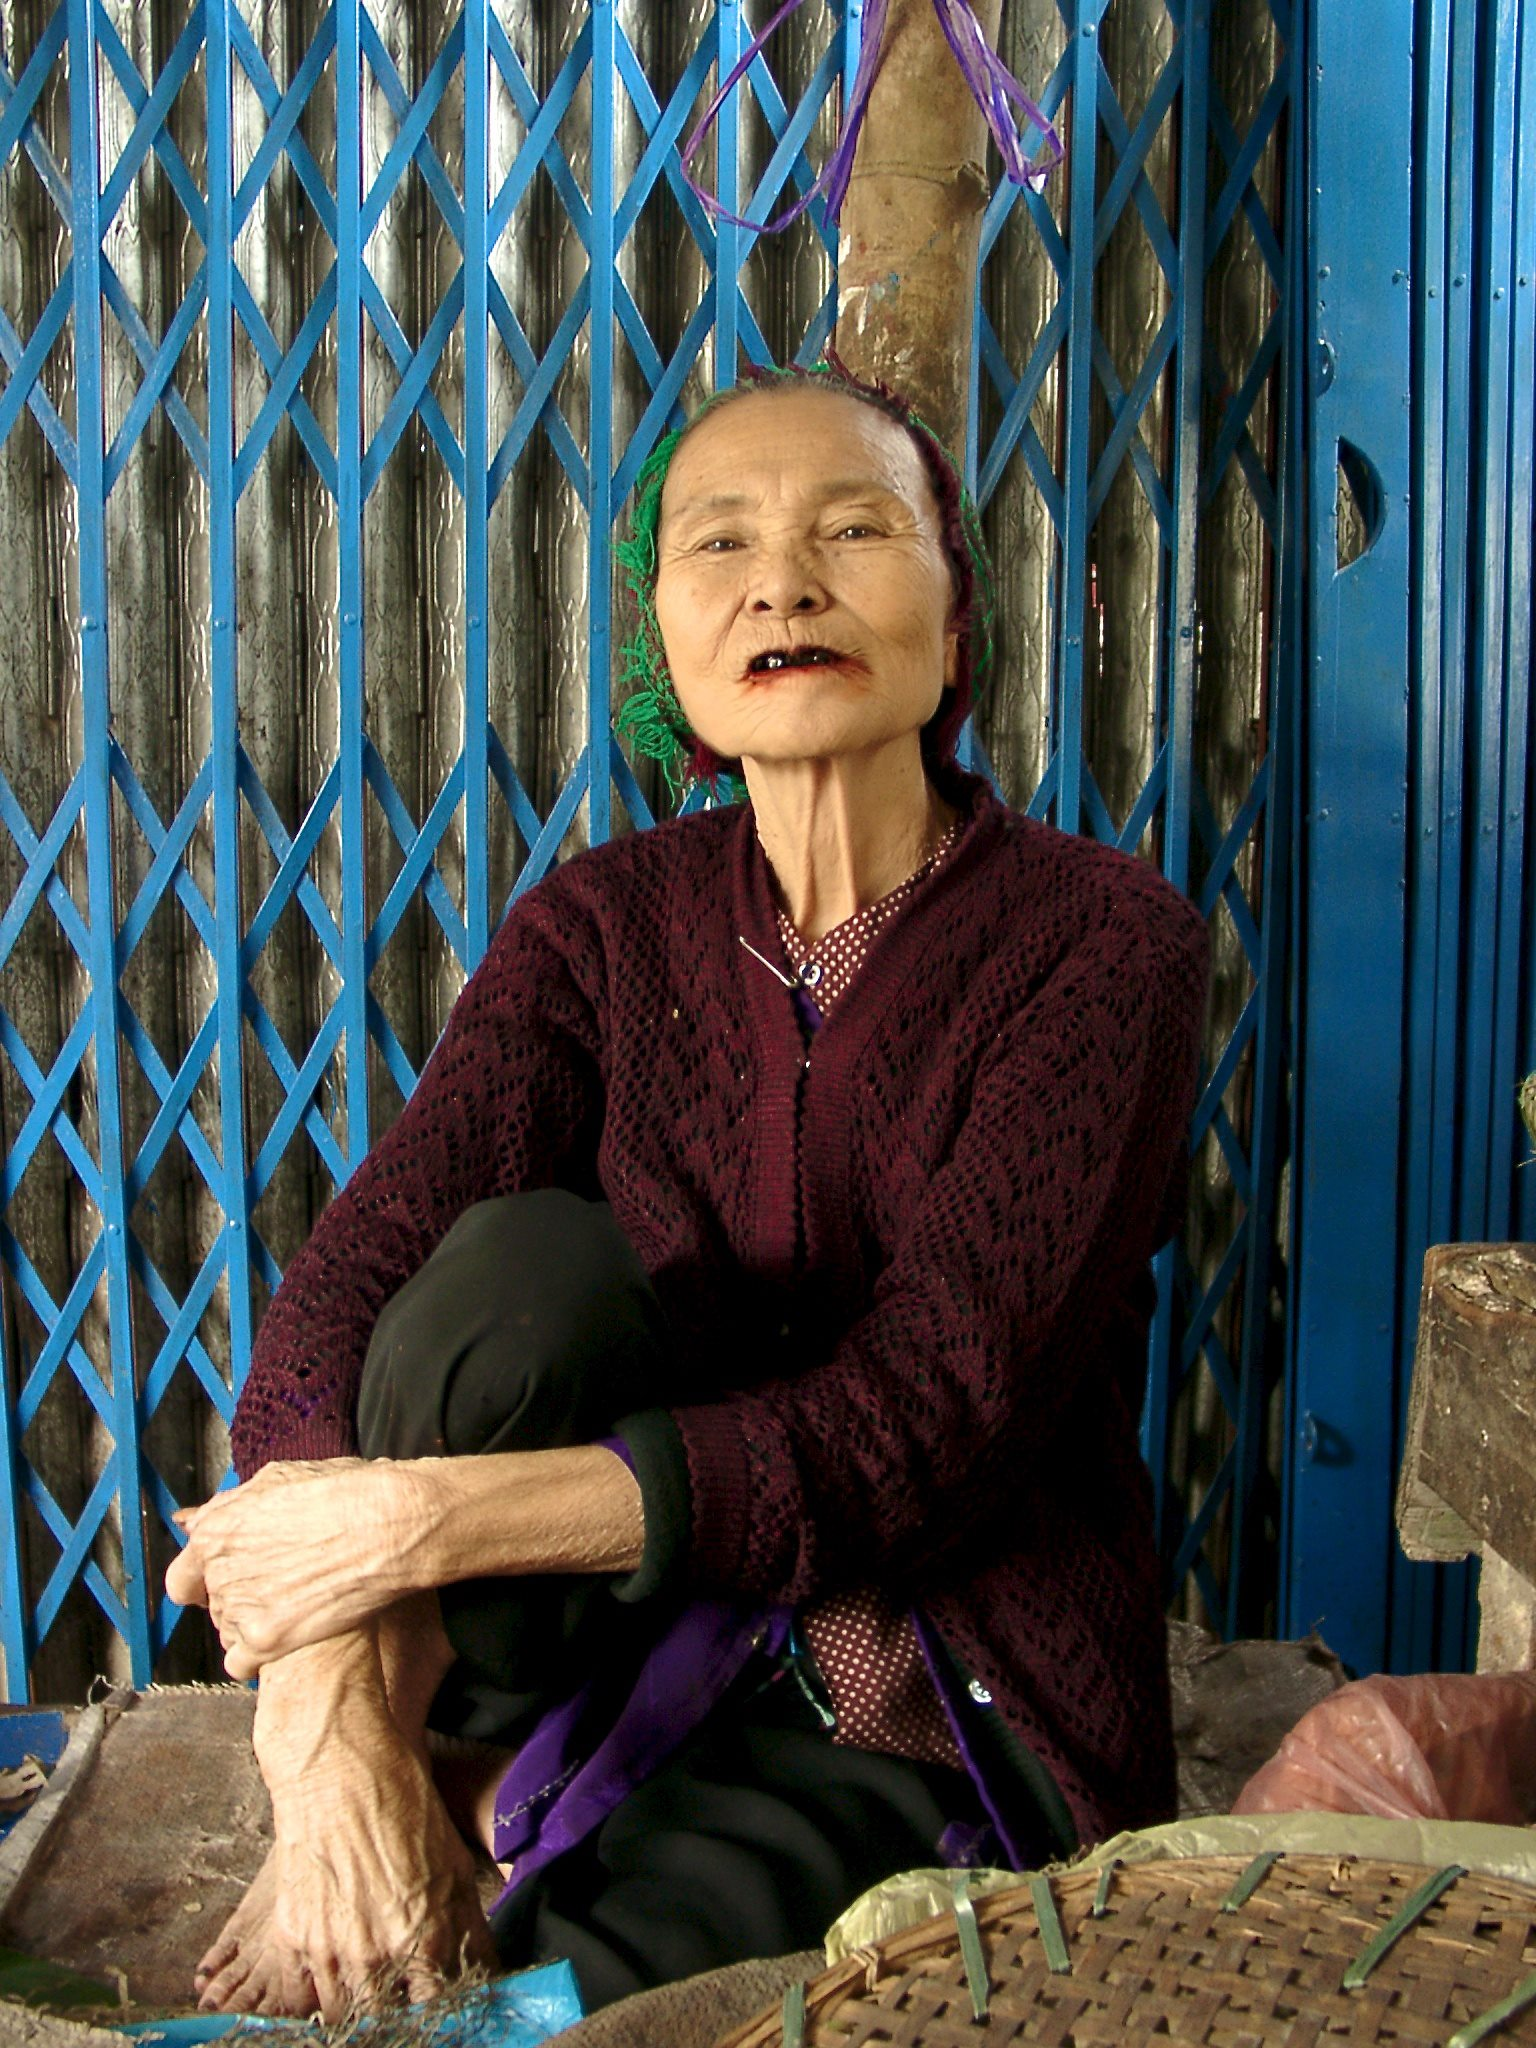 Jogging in Saigon: Old woman in front of a house